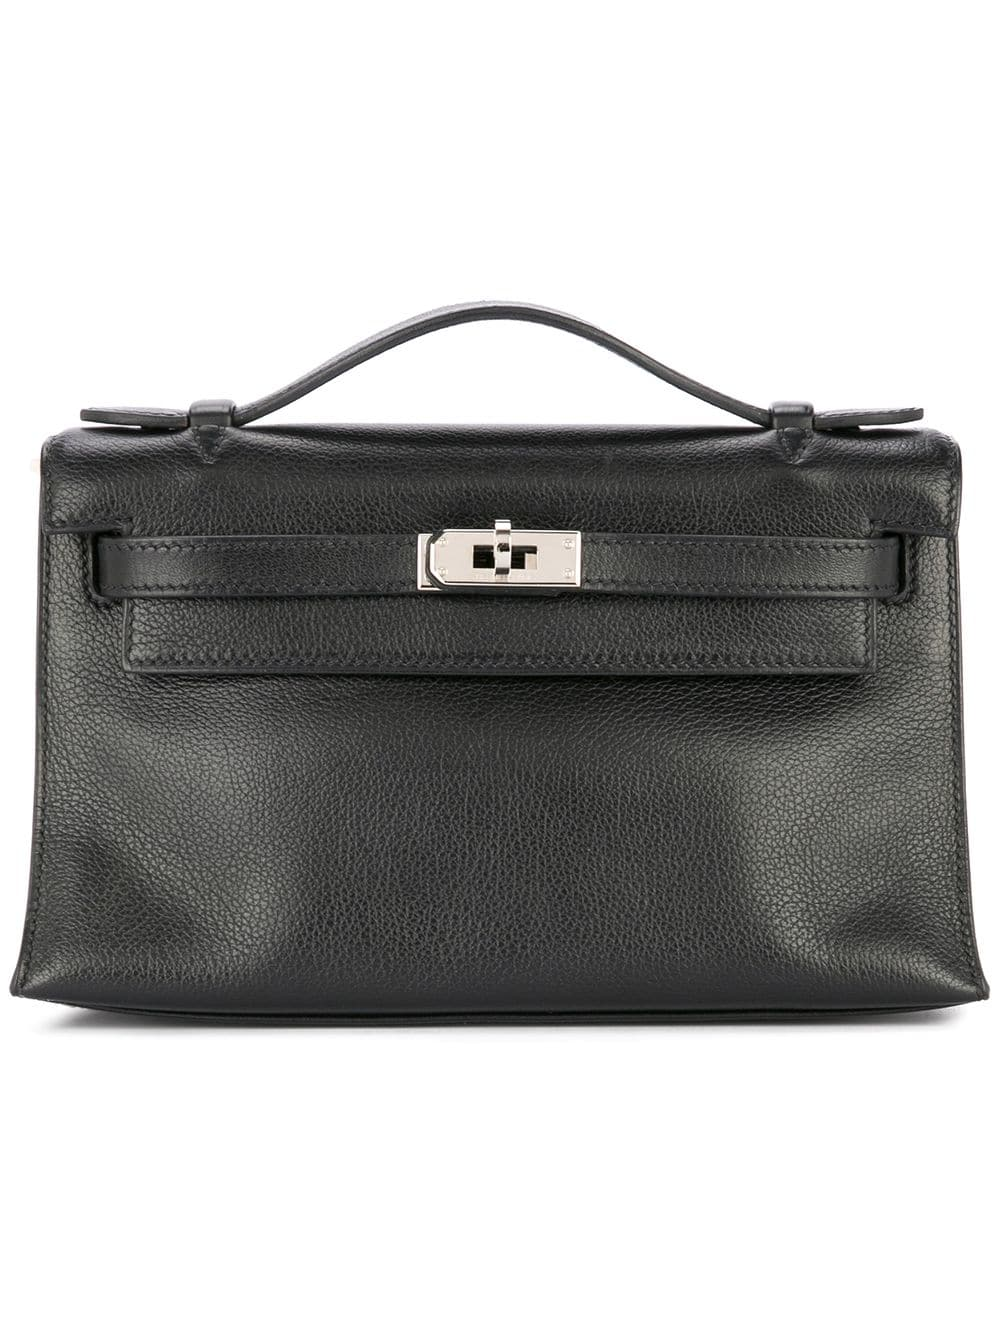 Kelly Pochette Bag by Hermes, available on farfetch.com Kendall Jenner Bags Exact Product